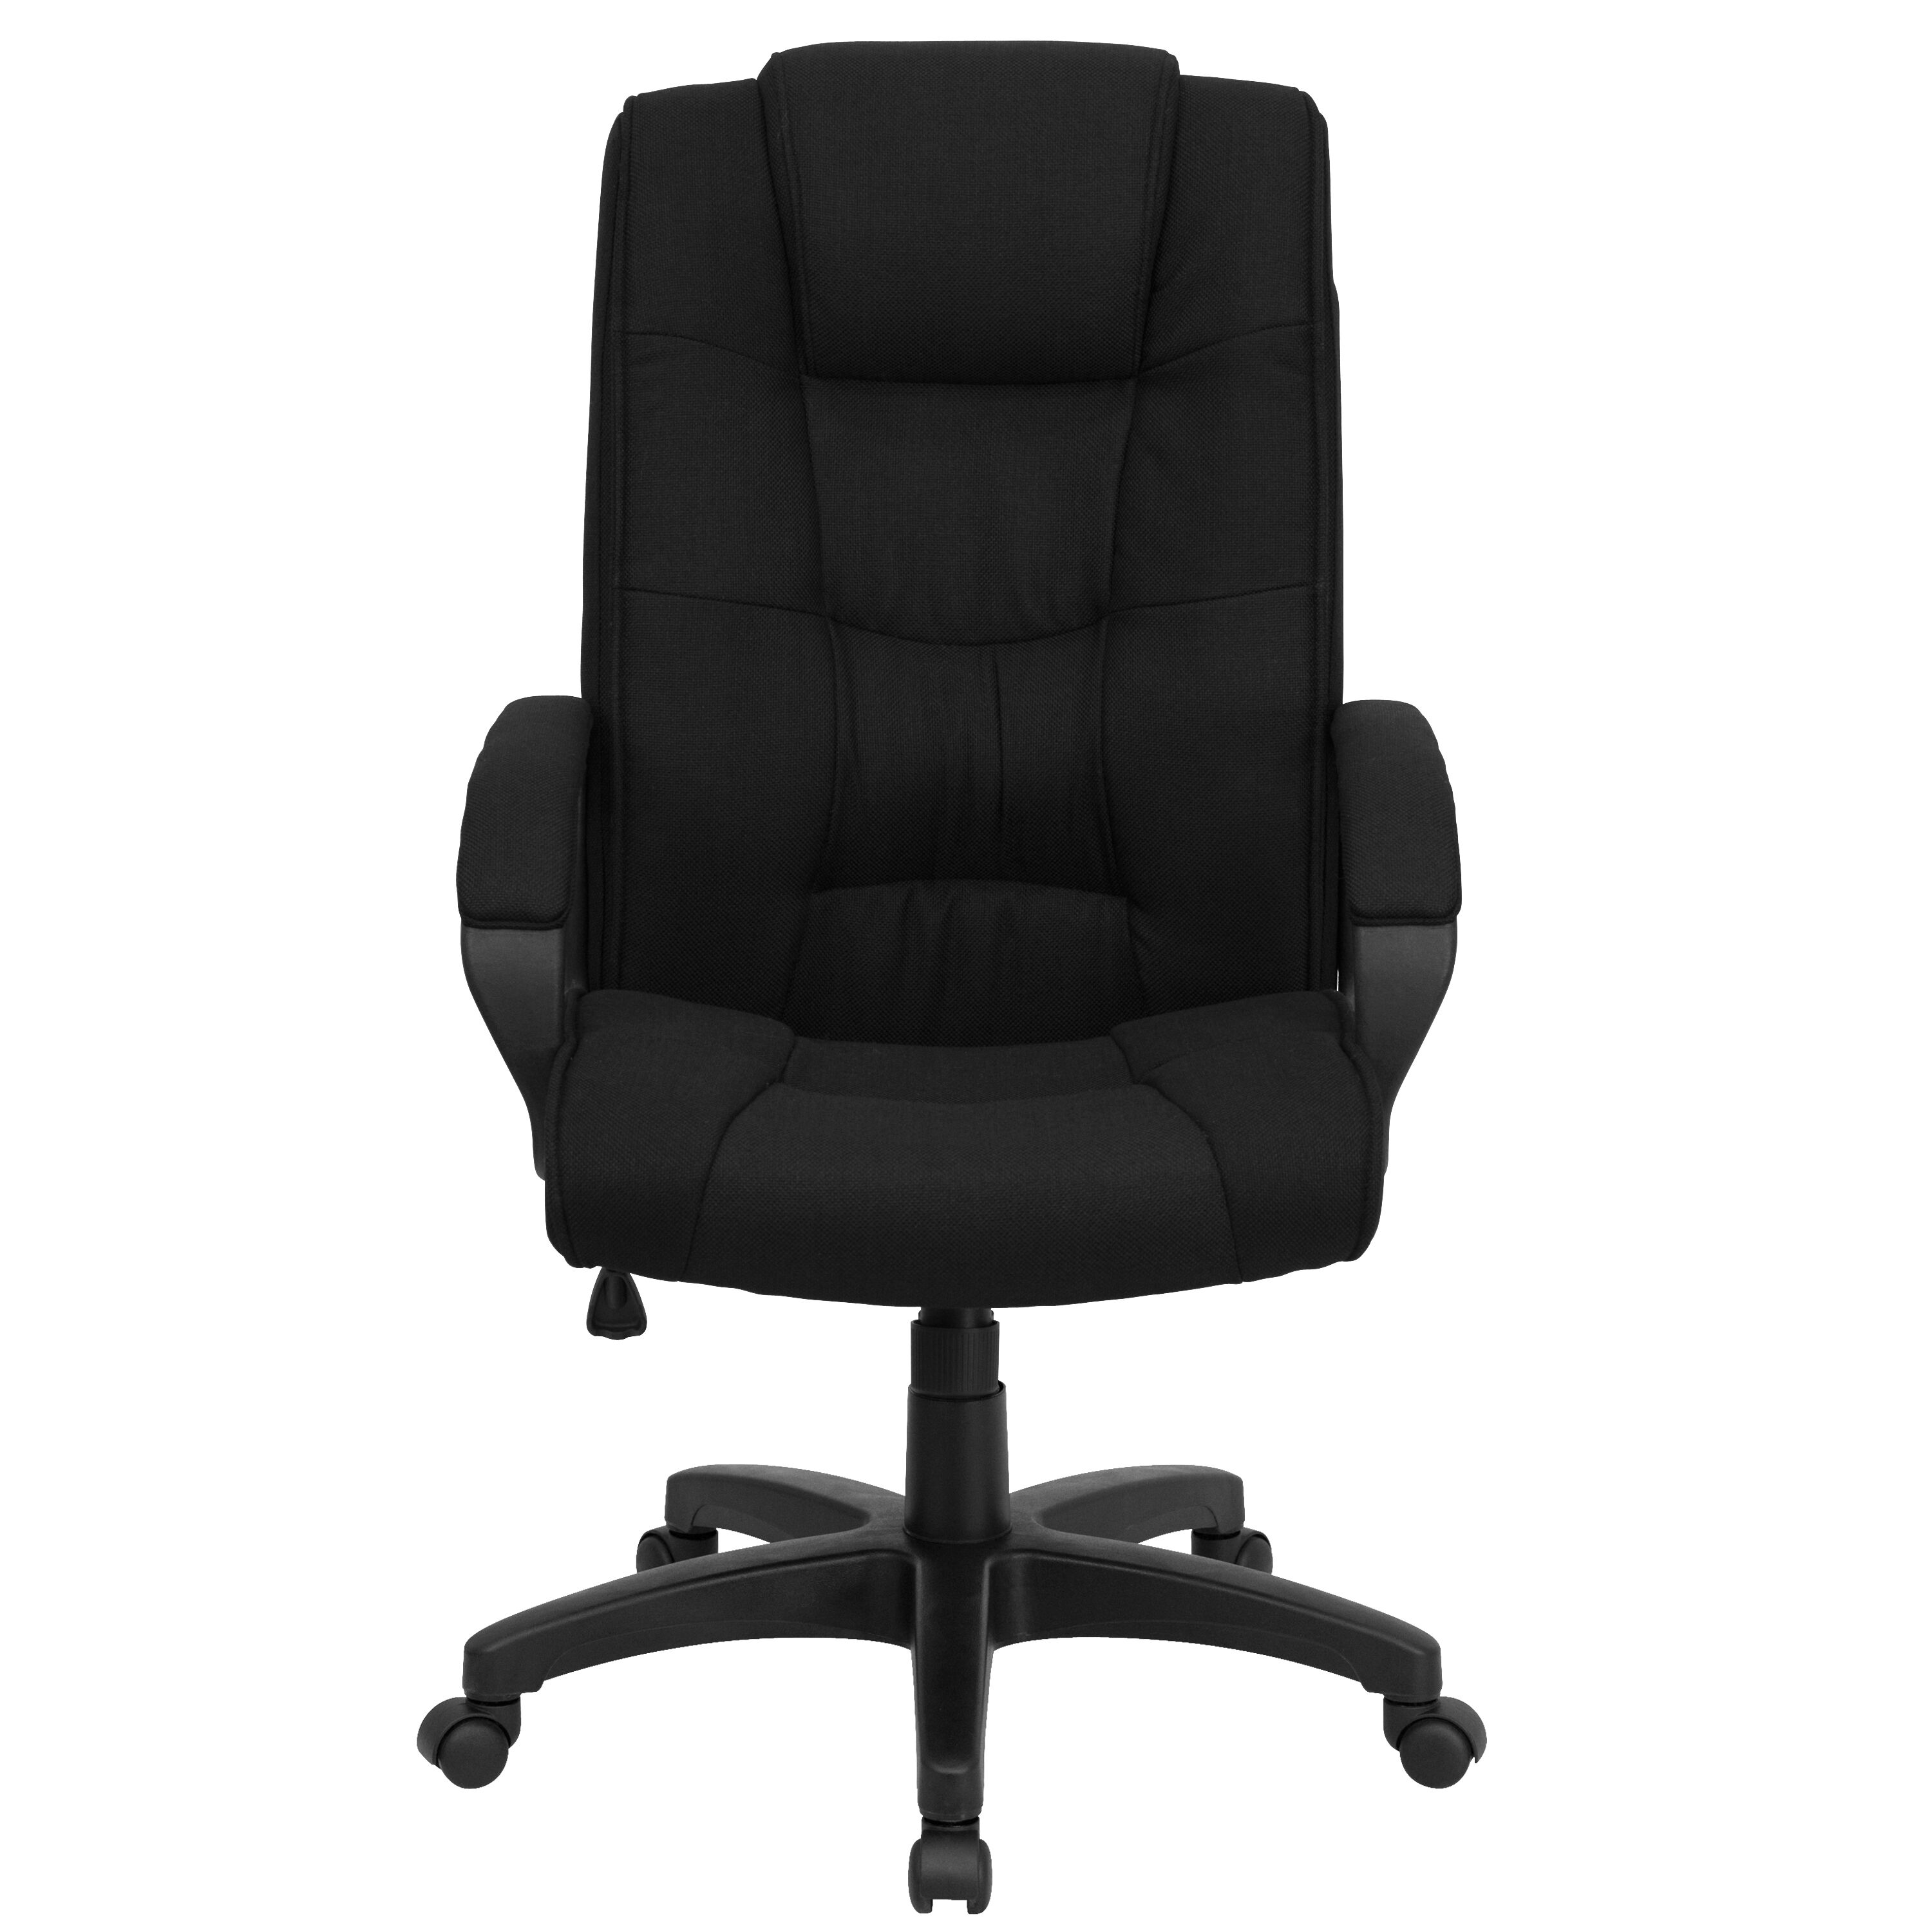 Our High Back Black Fabric Executive Swivel Chair With Arms Is On Sale Now.